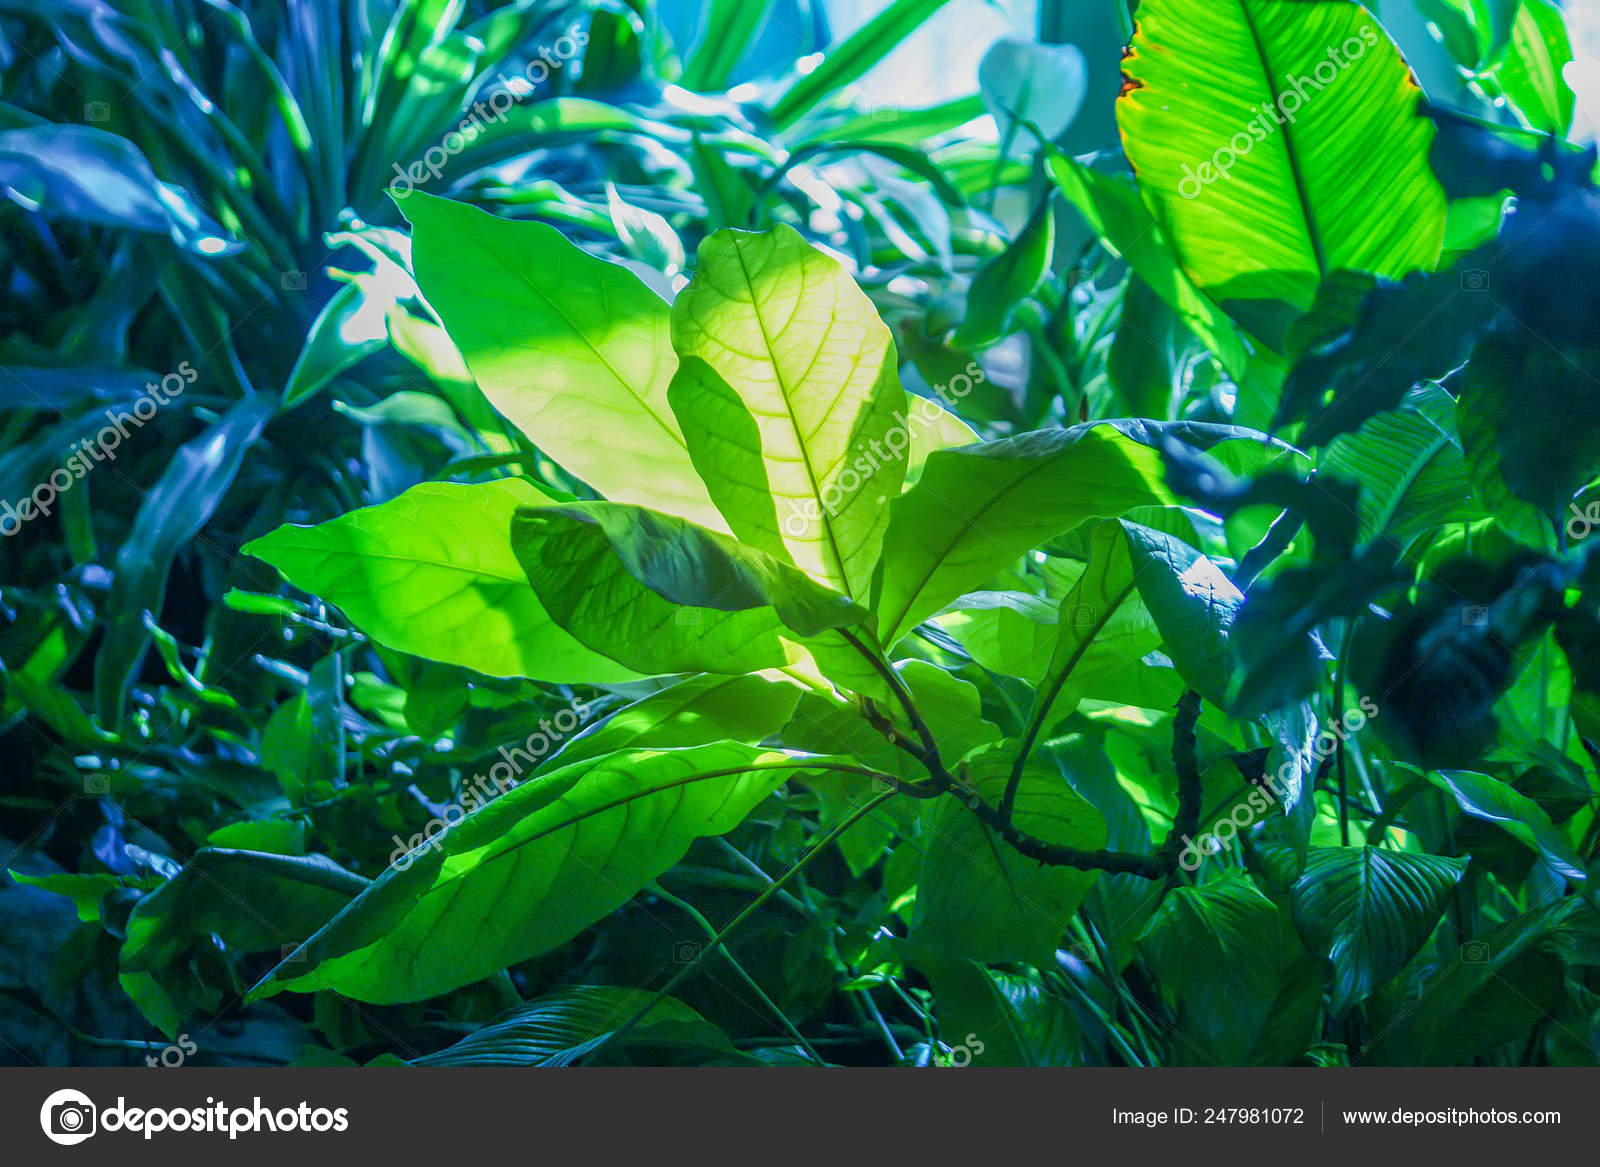 Tropical Leaves In Sunlight Close Up Foliage Nature Green Background Stock Photo C Nightlyviolet 247981072 Are you searching for tropical leaves png images or vector? https depositphotos com 247981072 stock photo tropical leaves in sunlight close html